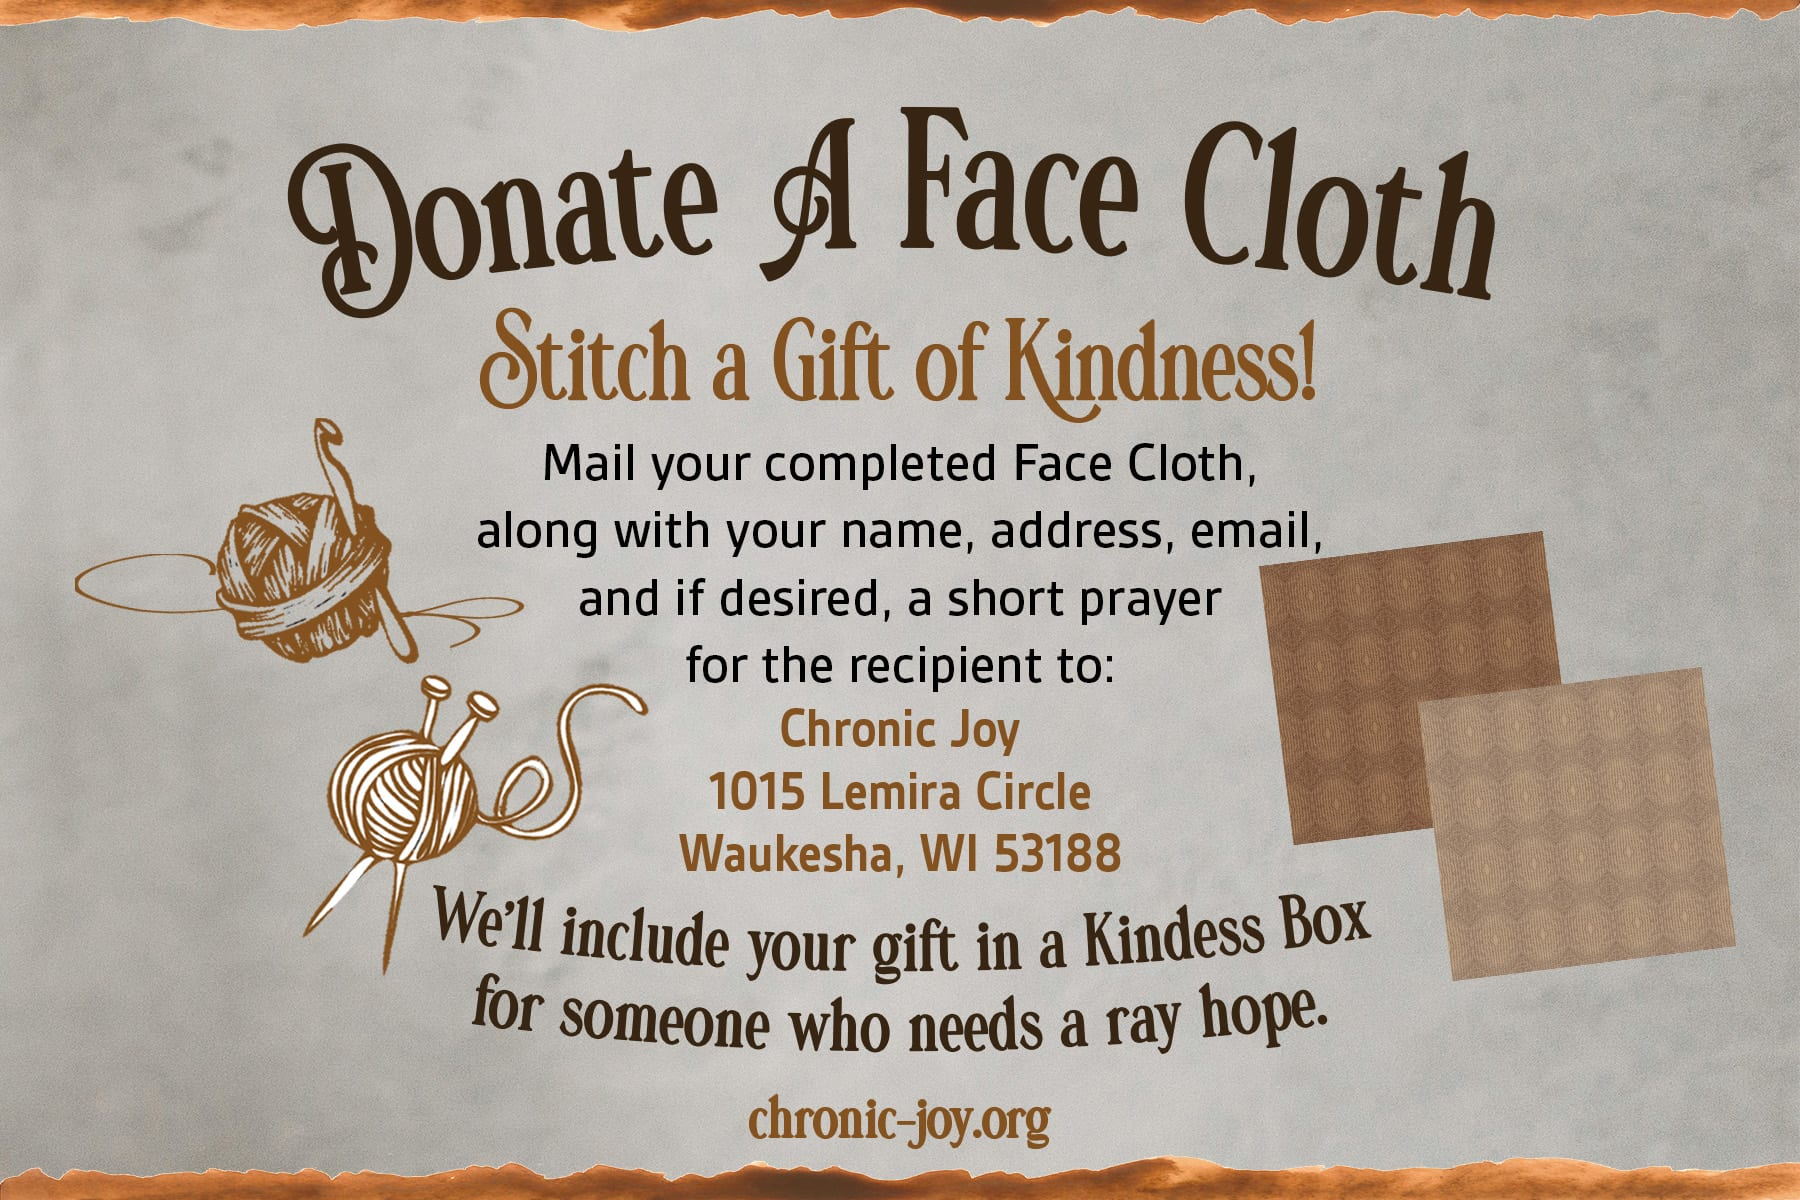 Donate A Face Cloth • Stitch a Gift of Kindness